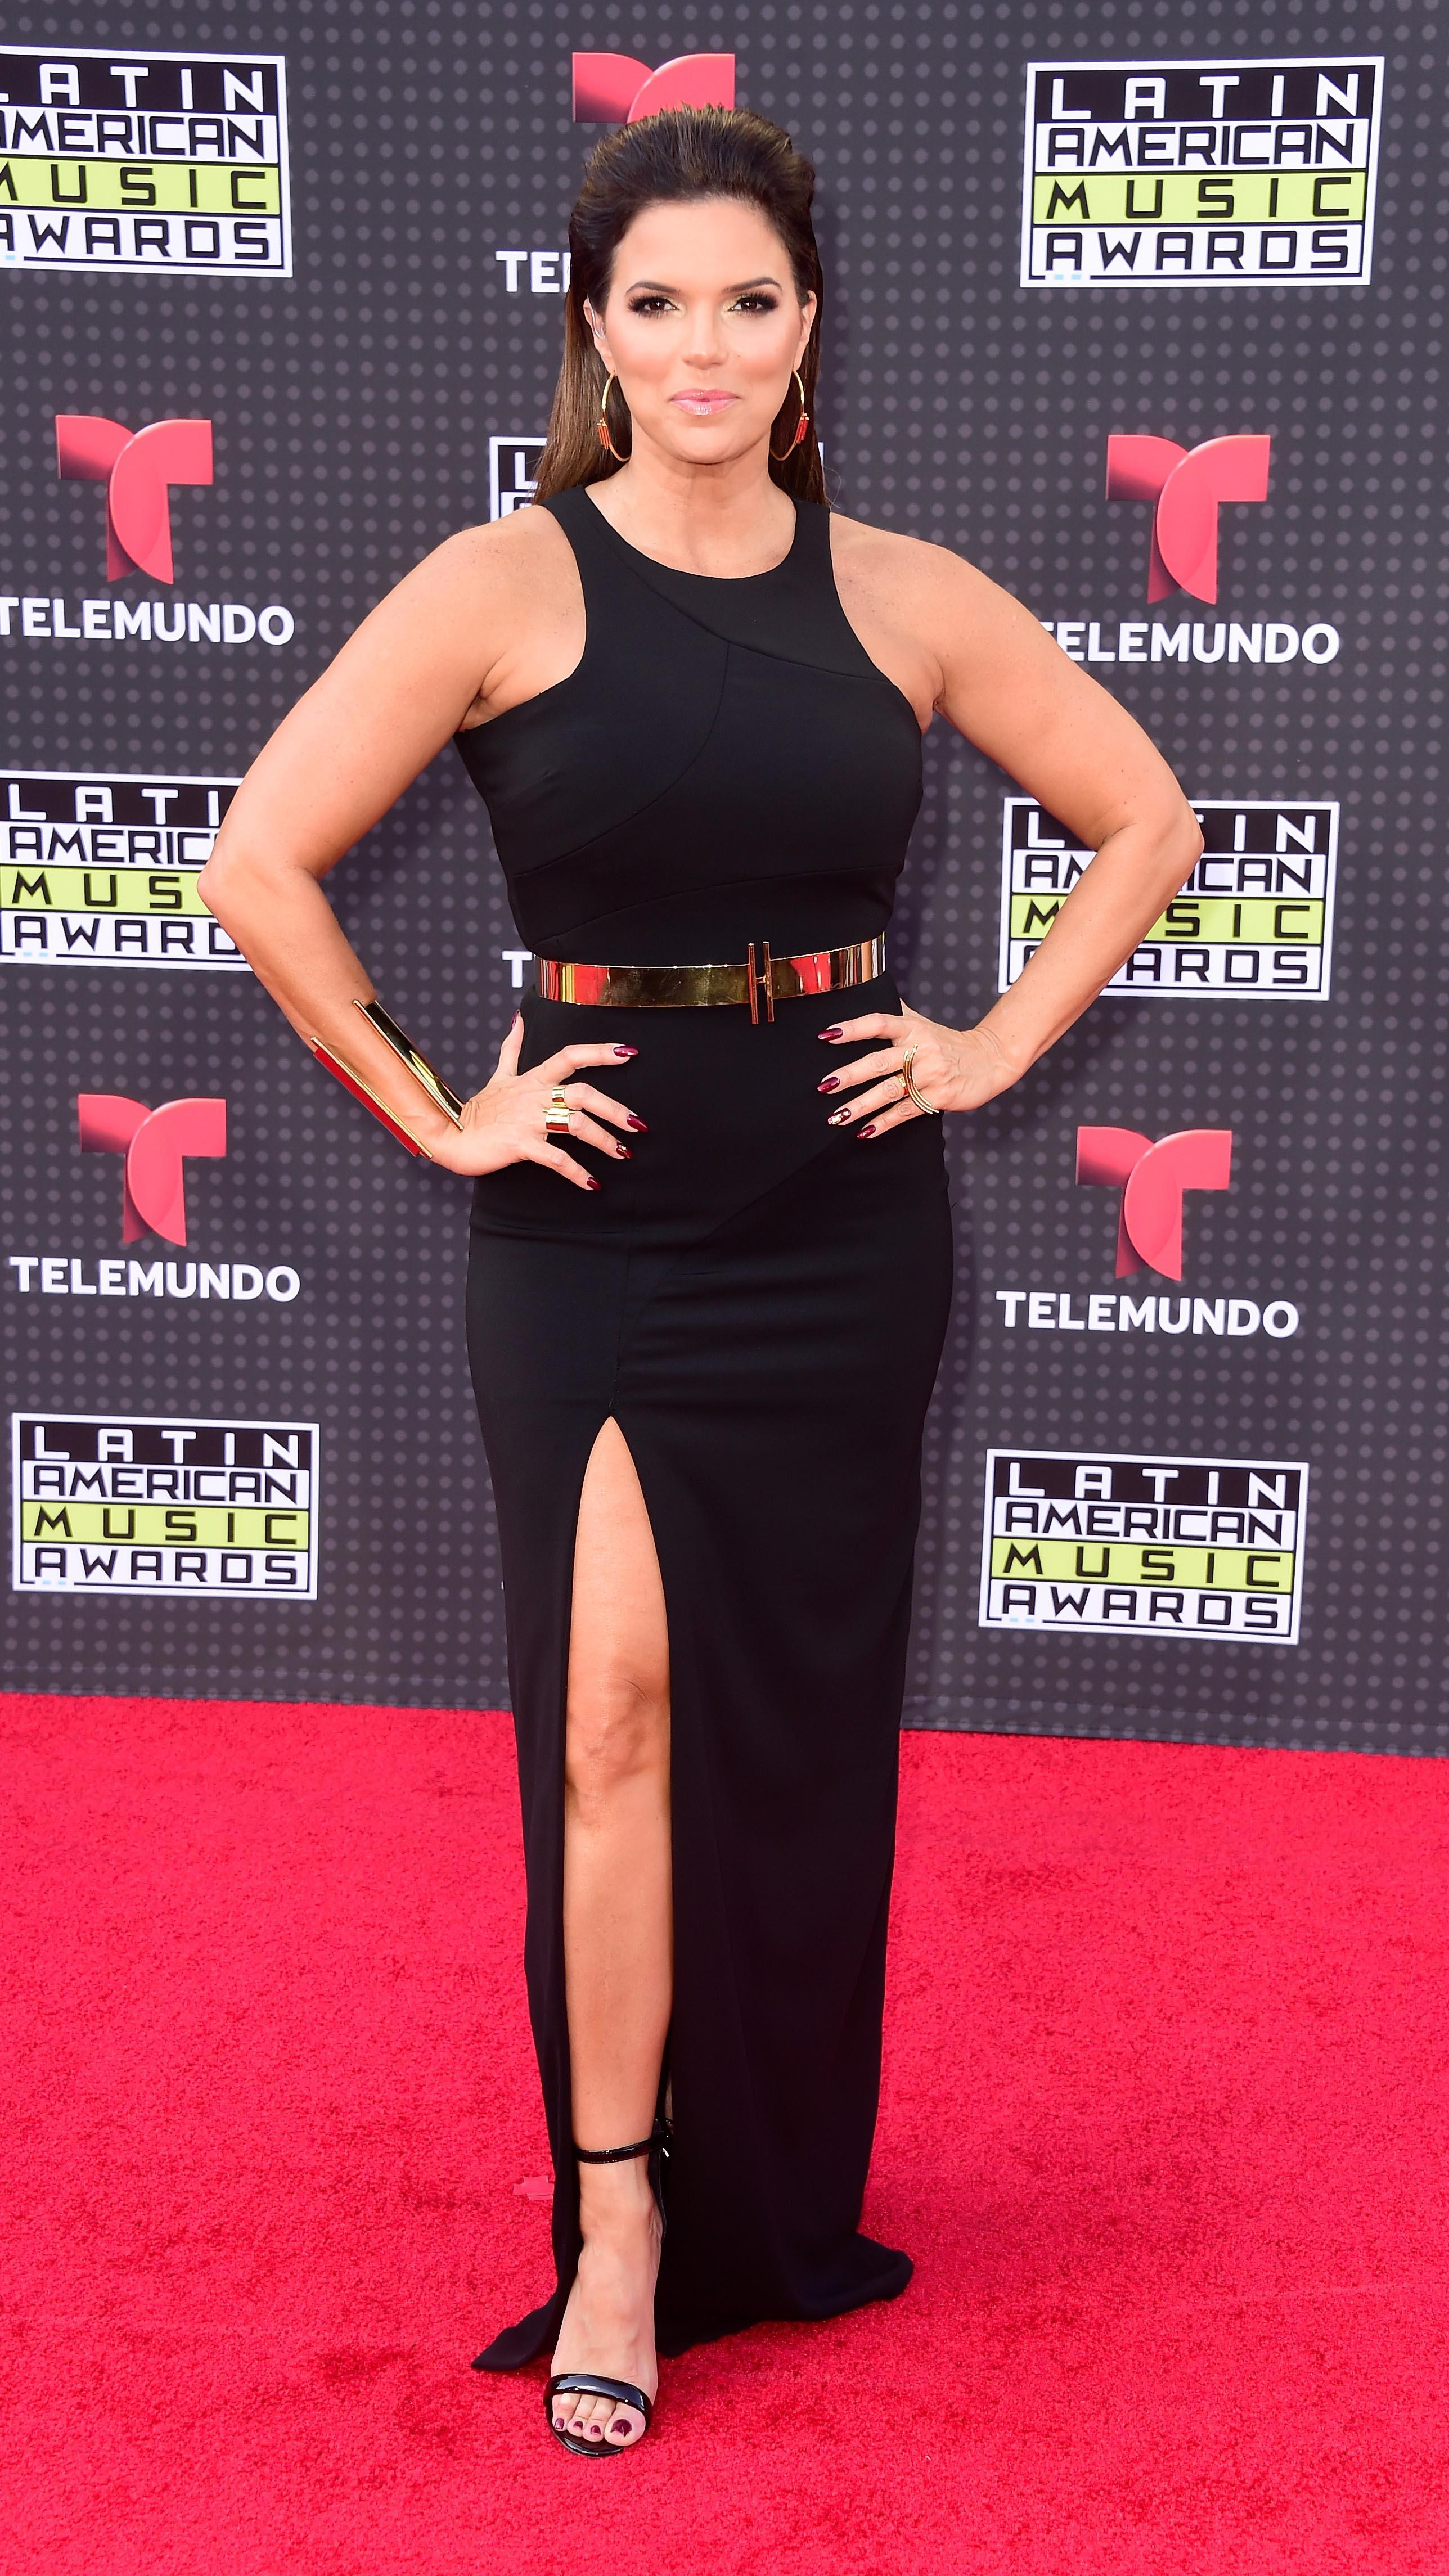 HOLLYWOOD, CA - OCTOBER 08:  Rashel Diaz attends Telemundo's Latin American Music Awards at the Dolby Theatre on October 8, 2015 in Hollywood, California.  (Photo by Frazer Harrison/Getty Images)